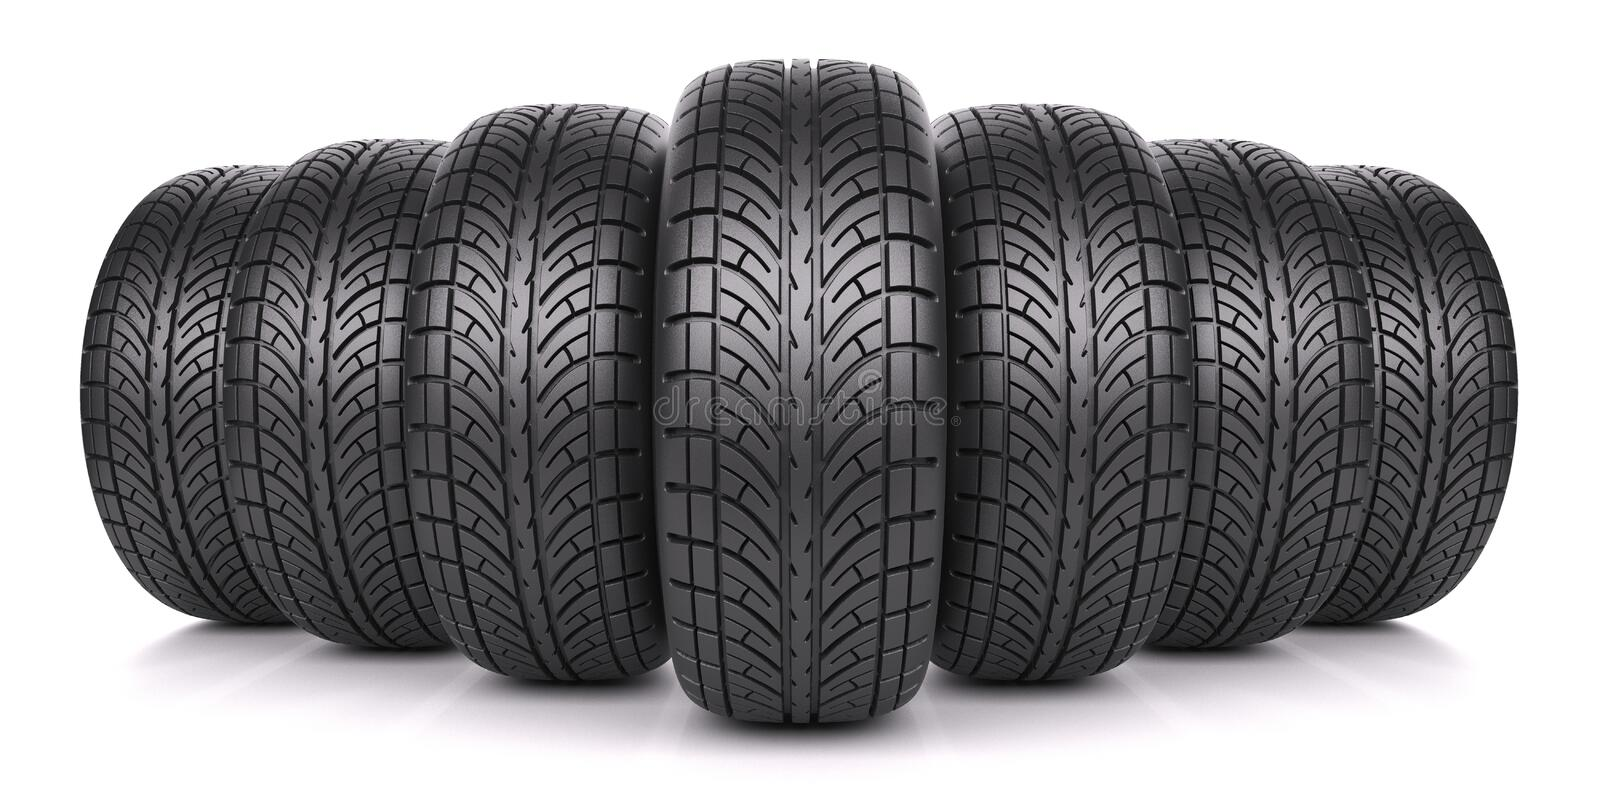 Car tires in row. Isolated on white background 3d stock illustration